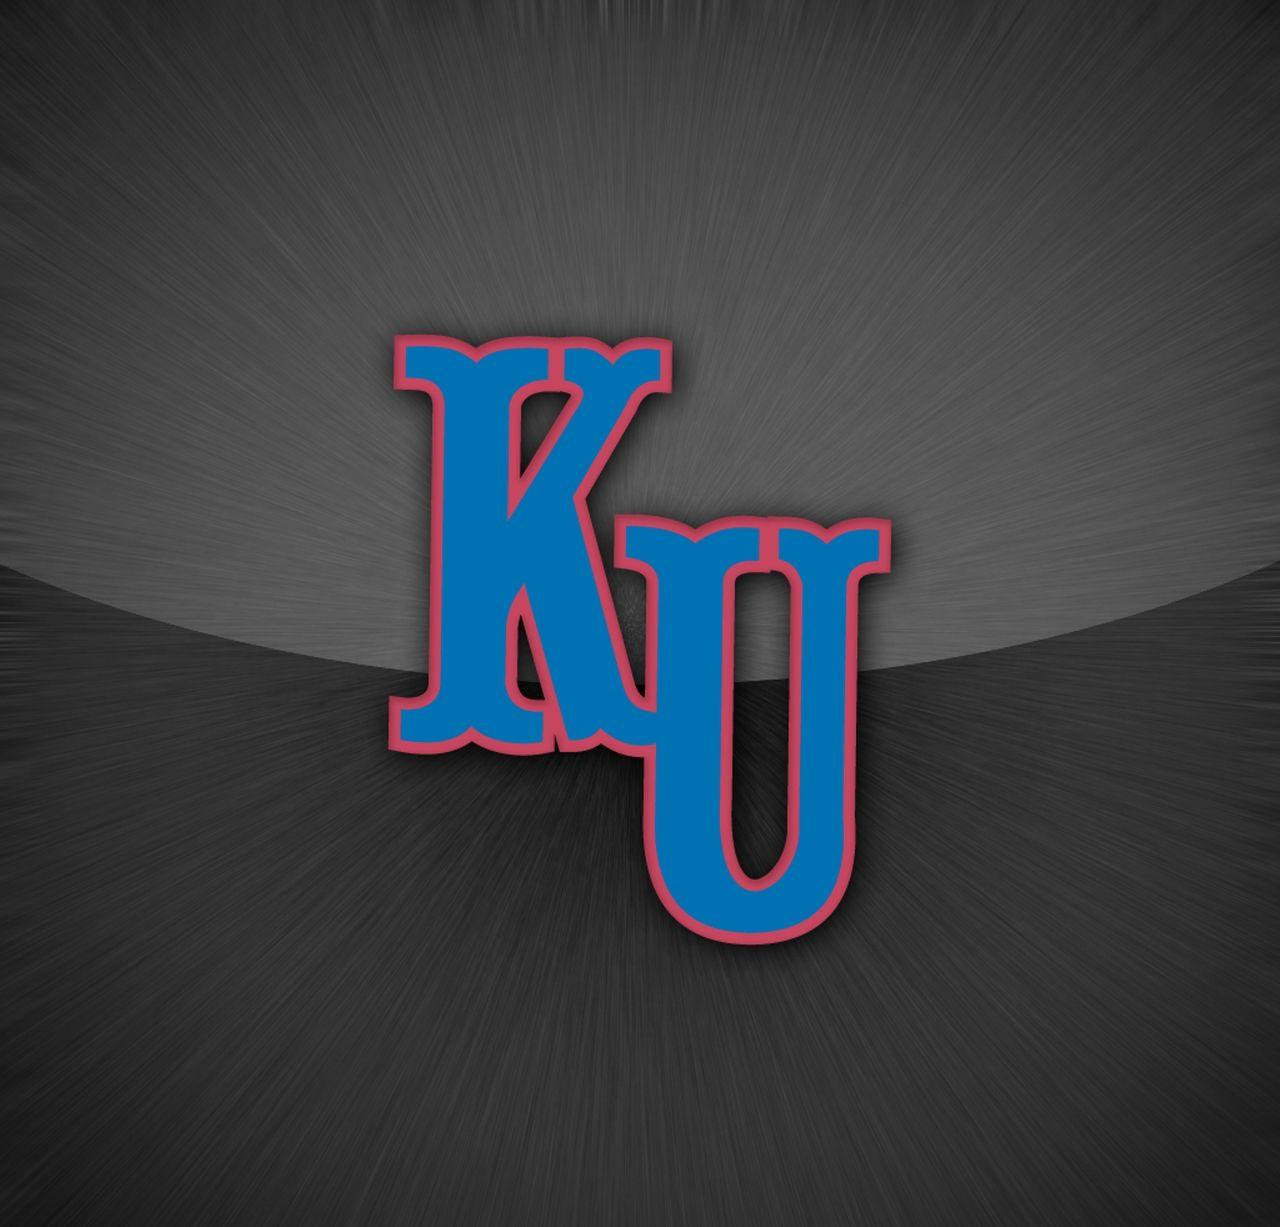 Kansas Jayhawks Basketball Iphone Wallpaper - Download New Kansas .